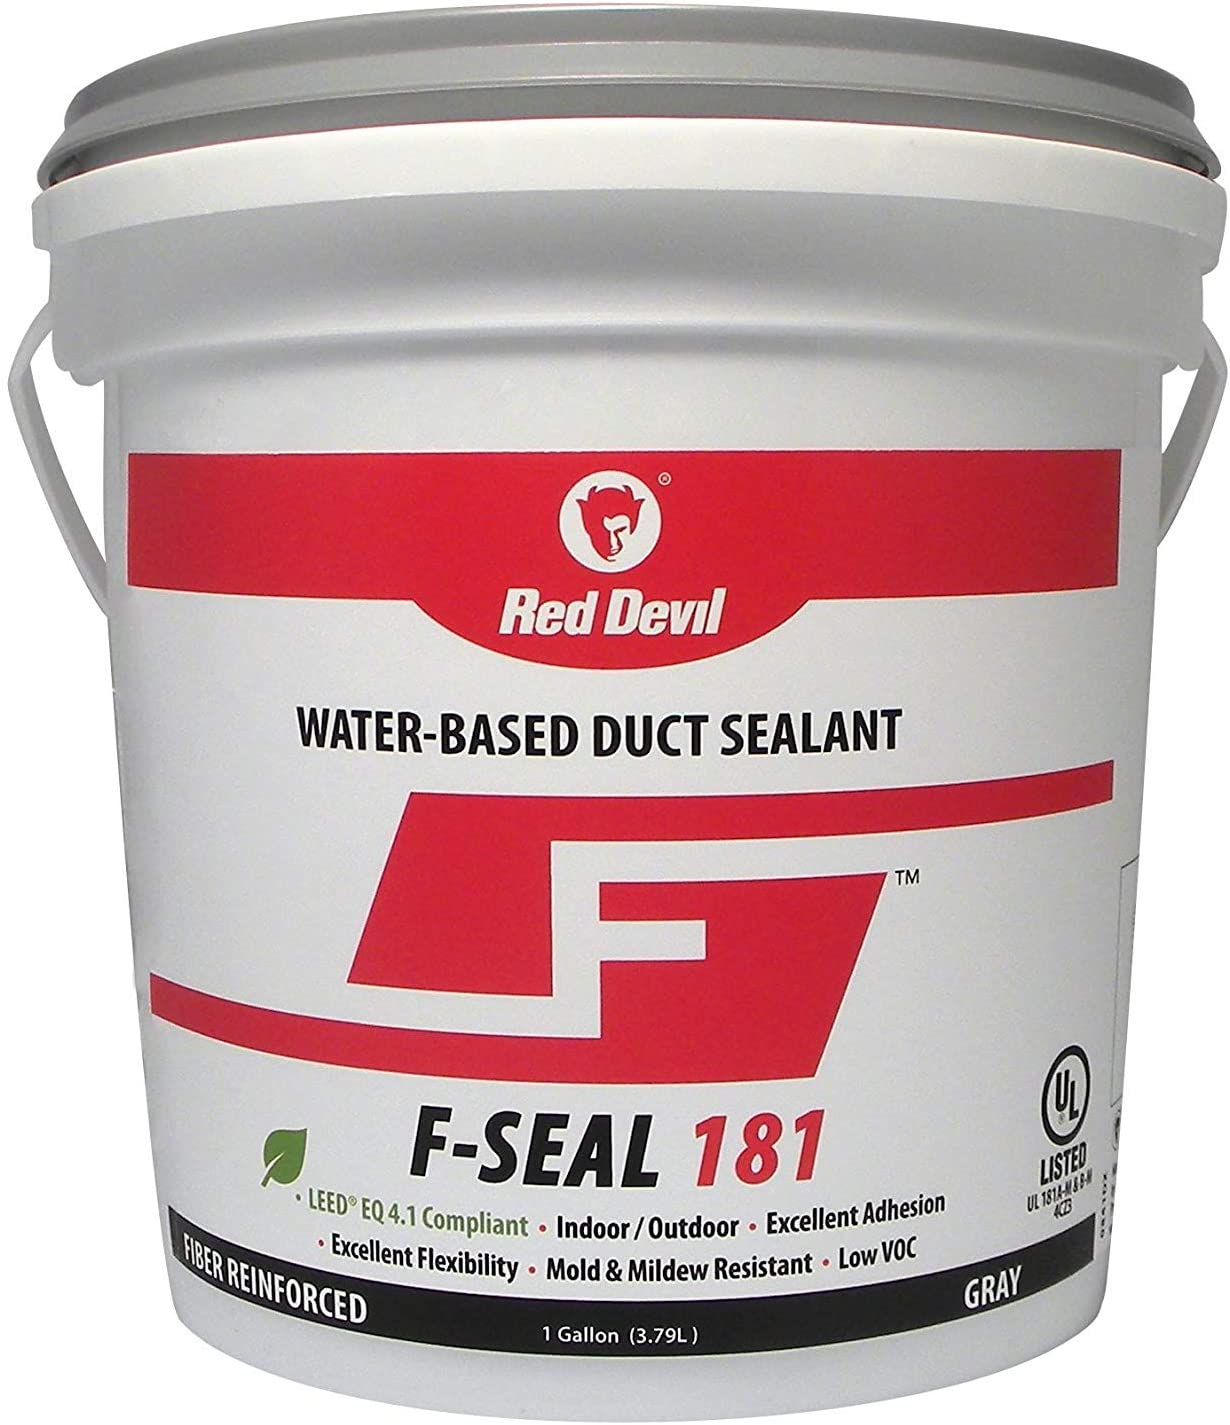 Red Devil 0841DX F Seal 181 Water Based Duct Sealant, 1 Gallon, Gray